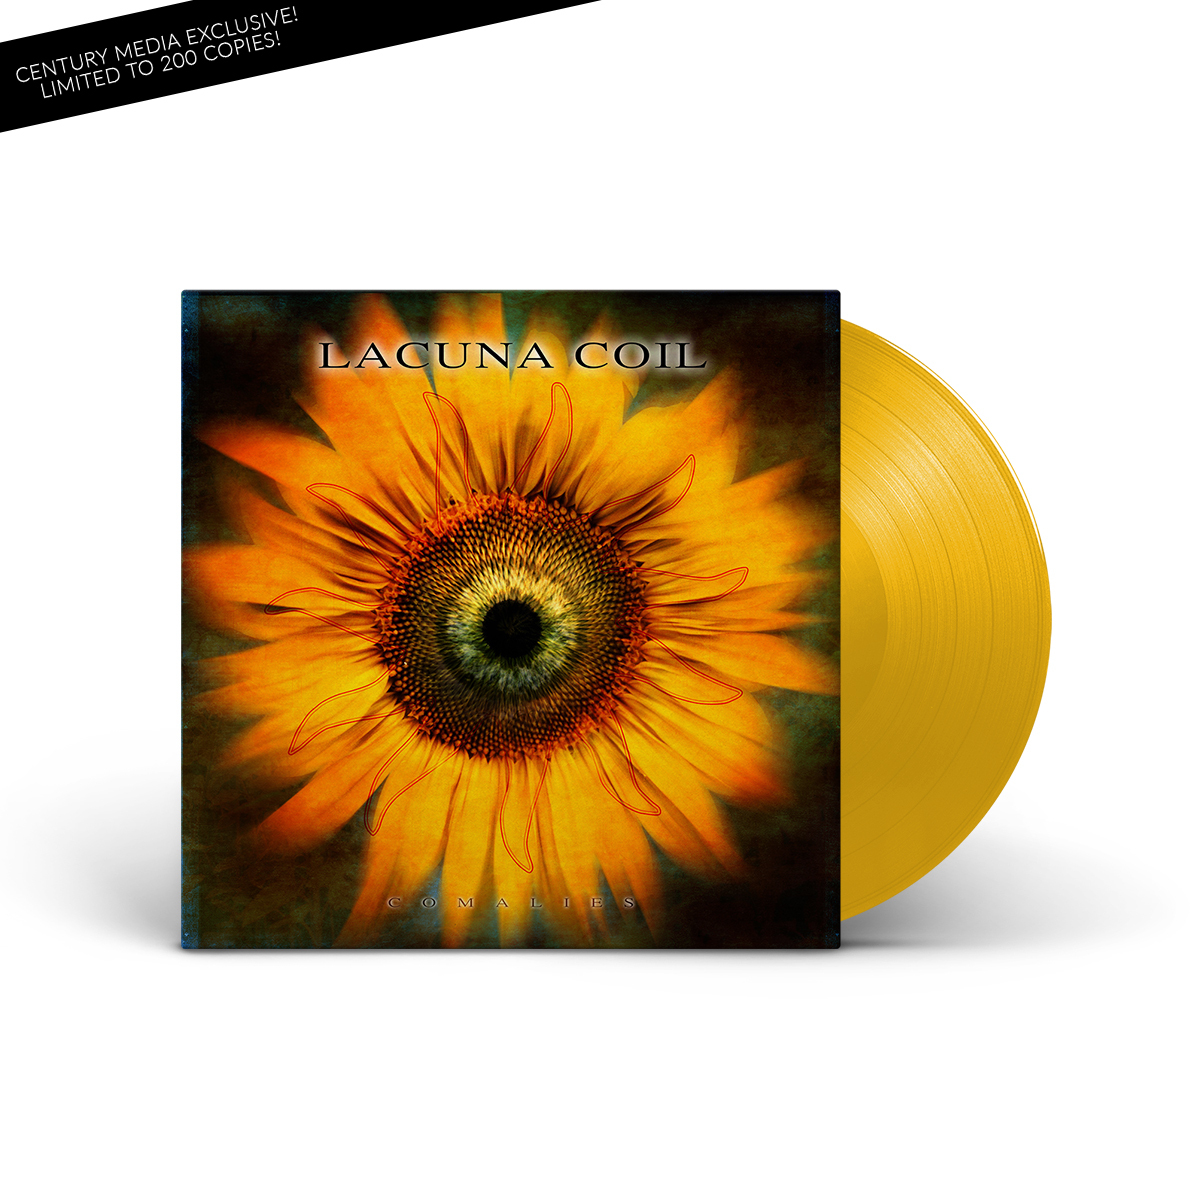 Lacuna Coil - Comalies (Re-issue 2019) Yellow Vinyl LP